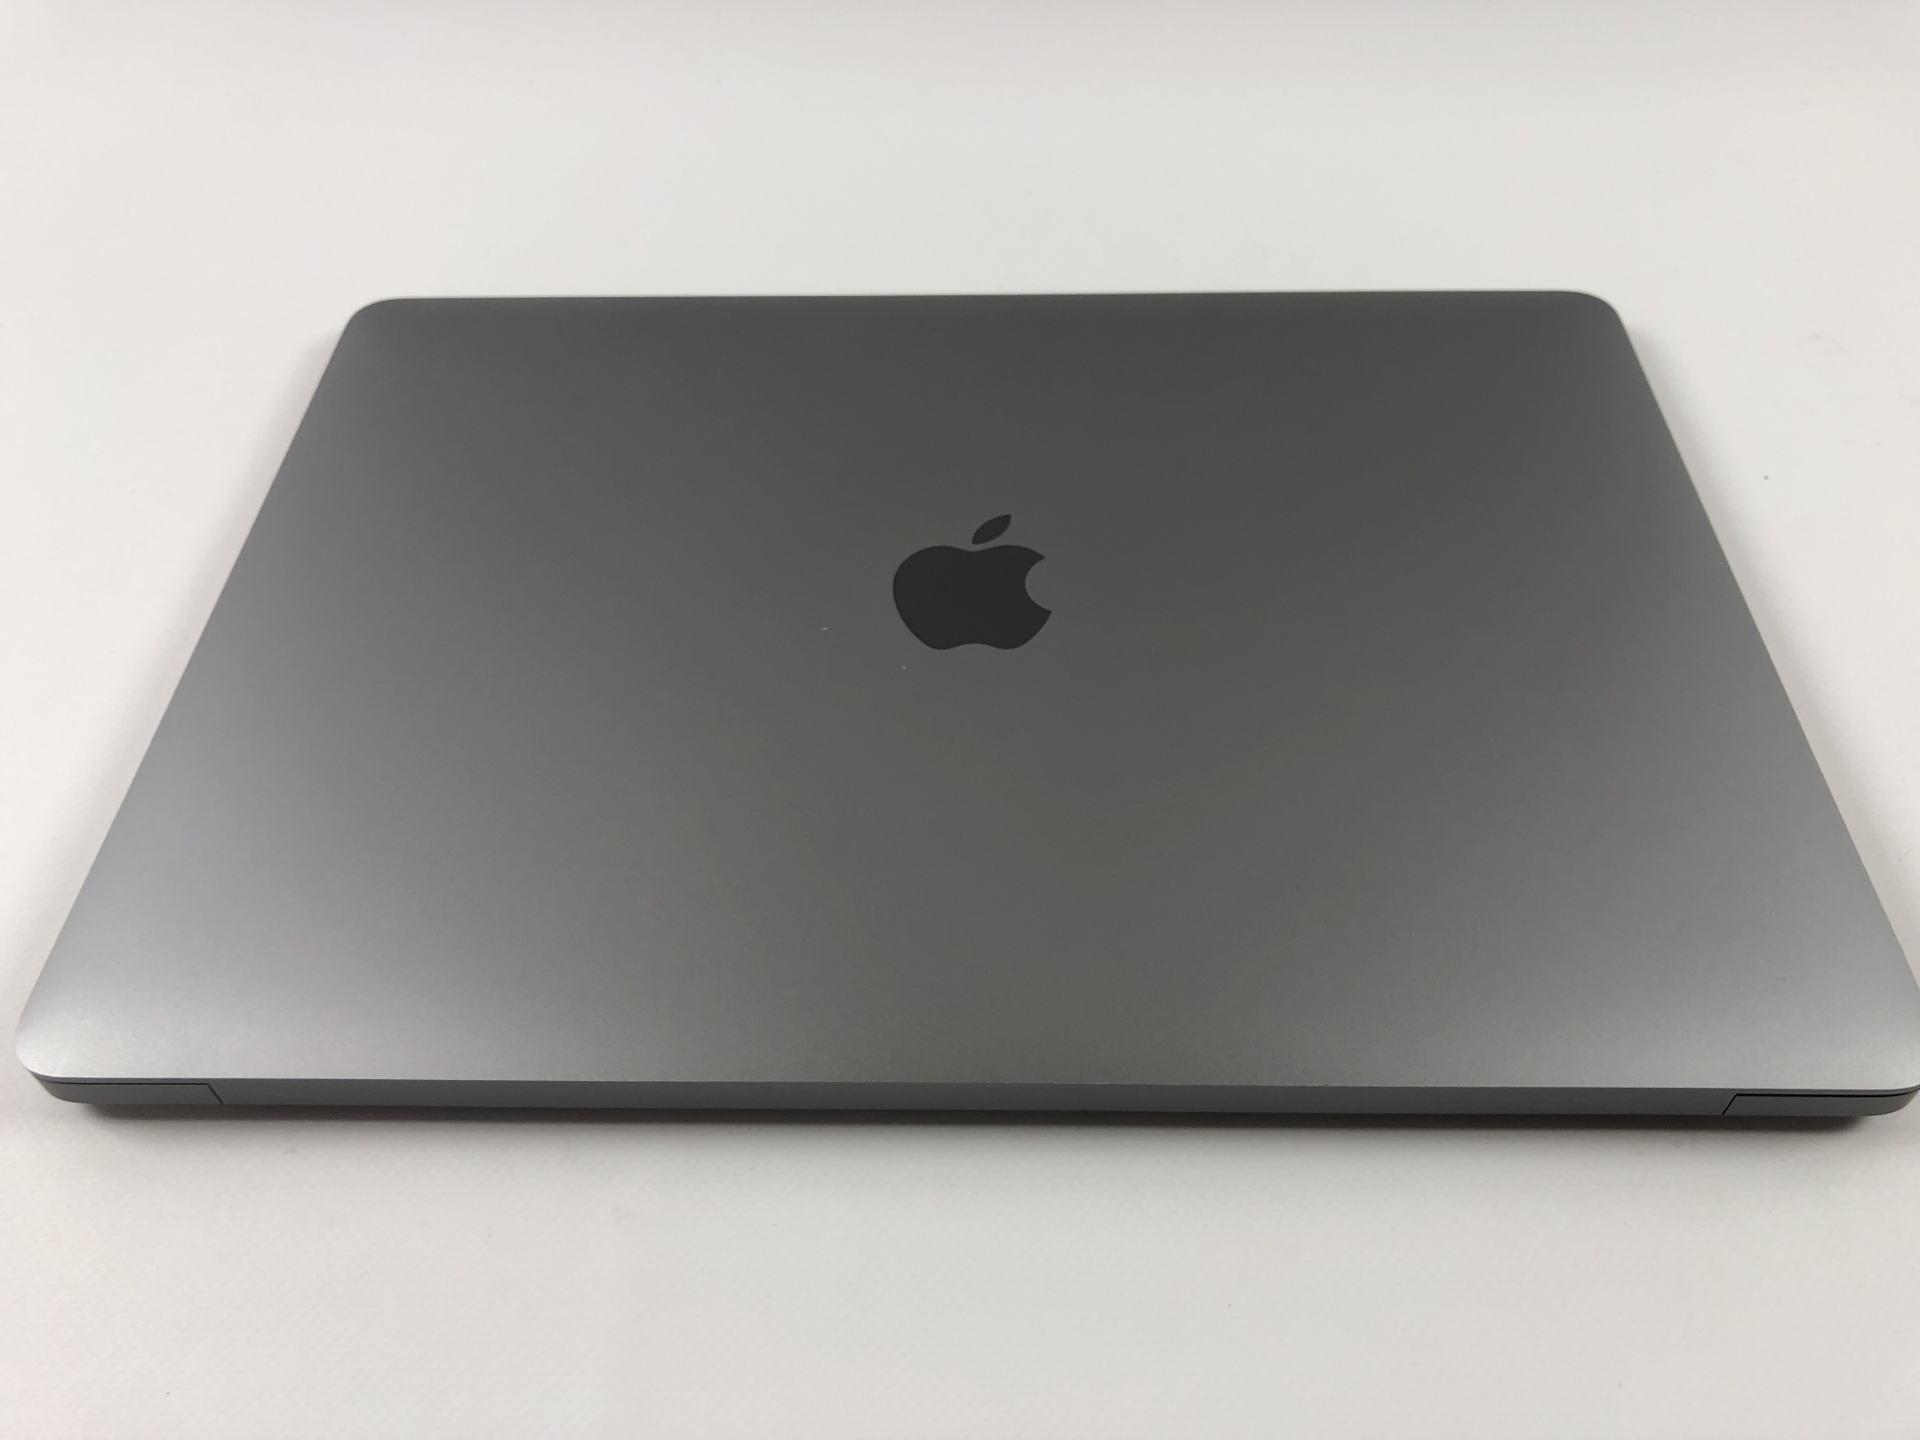 "MacBook Air 13"" Late 2018 (Intel Core i5 1.6 GHz 16 GB RAM 512 GB SSD), Space Gray, Intel Core i5 1.6 GHz, 16 GB RAM, 512 GB SSD, bild 2"